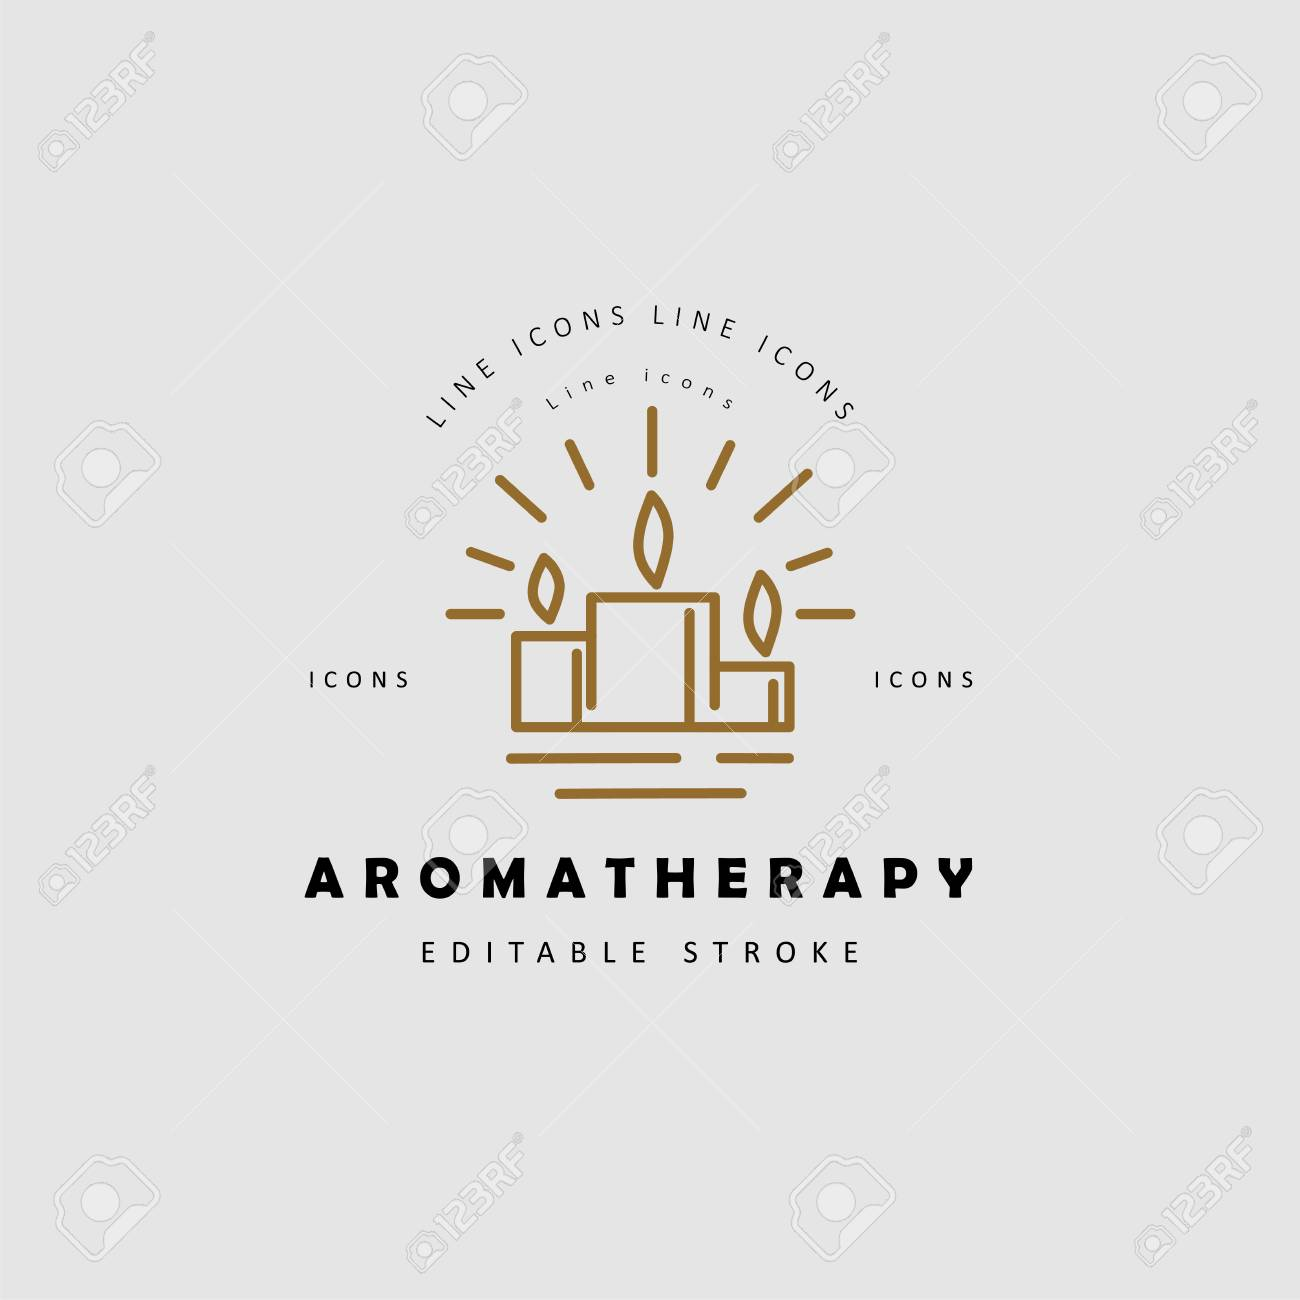 Vector Icon And Logo For Aromatherapy Editable Outline Stroke Royalty Free Cliparts Vectors And Stock Illustration Image 113854836